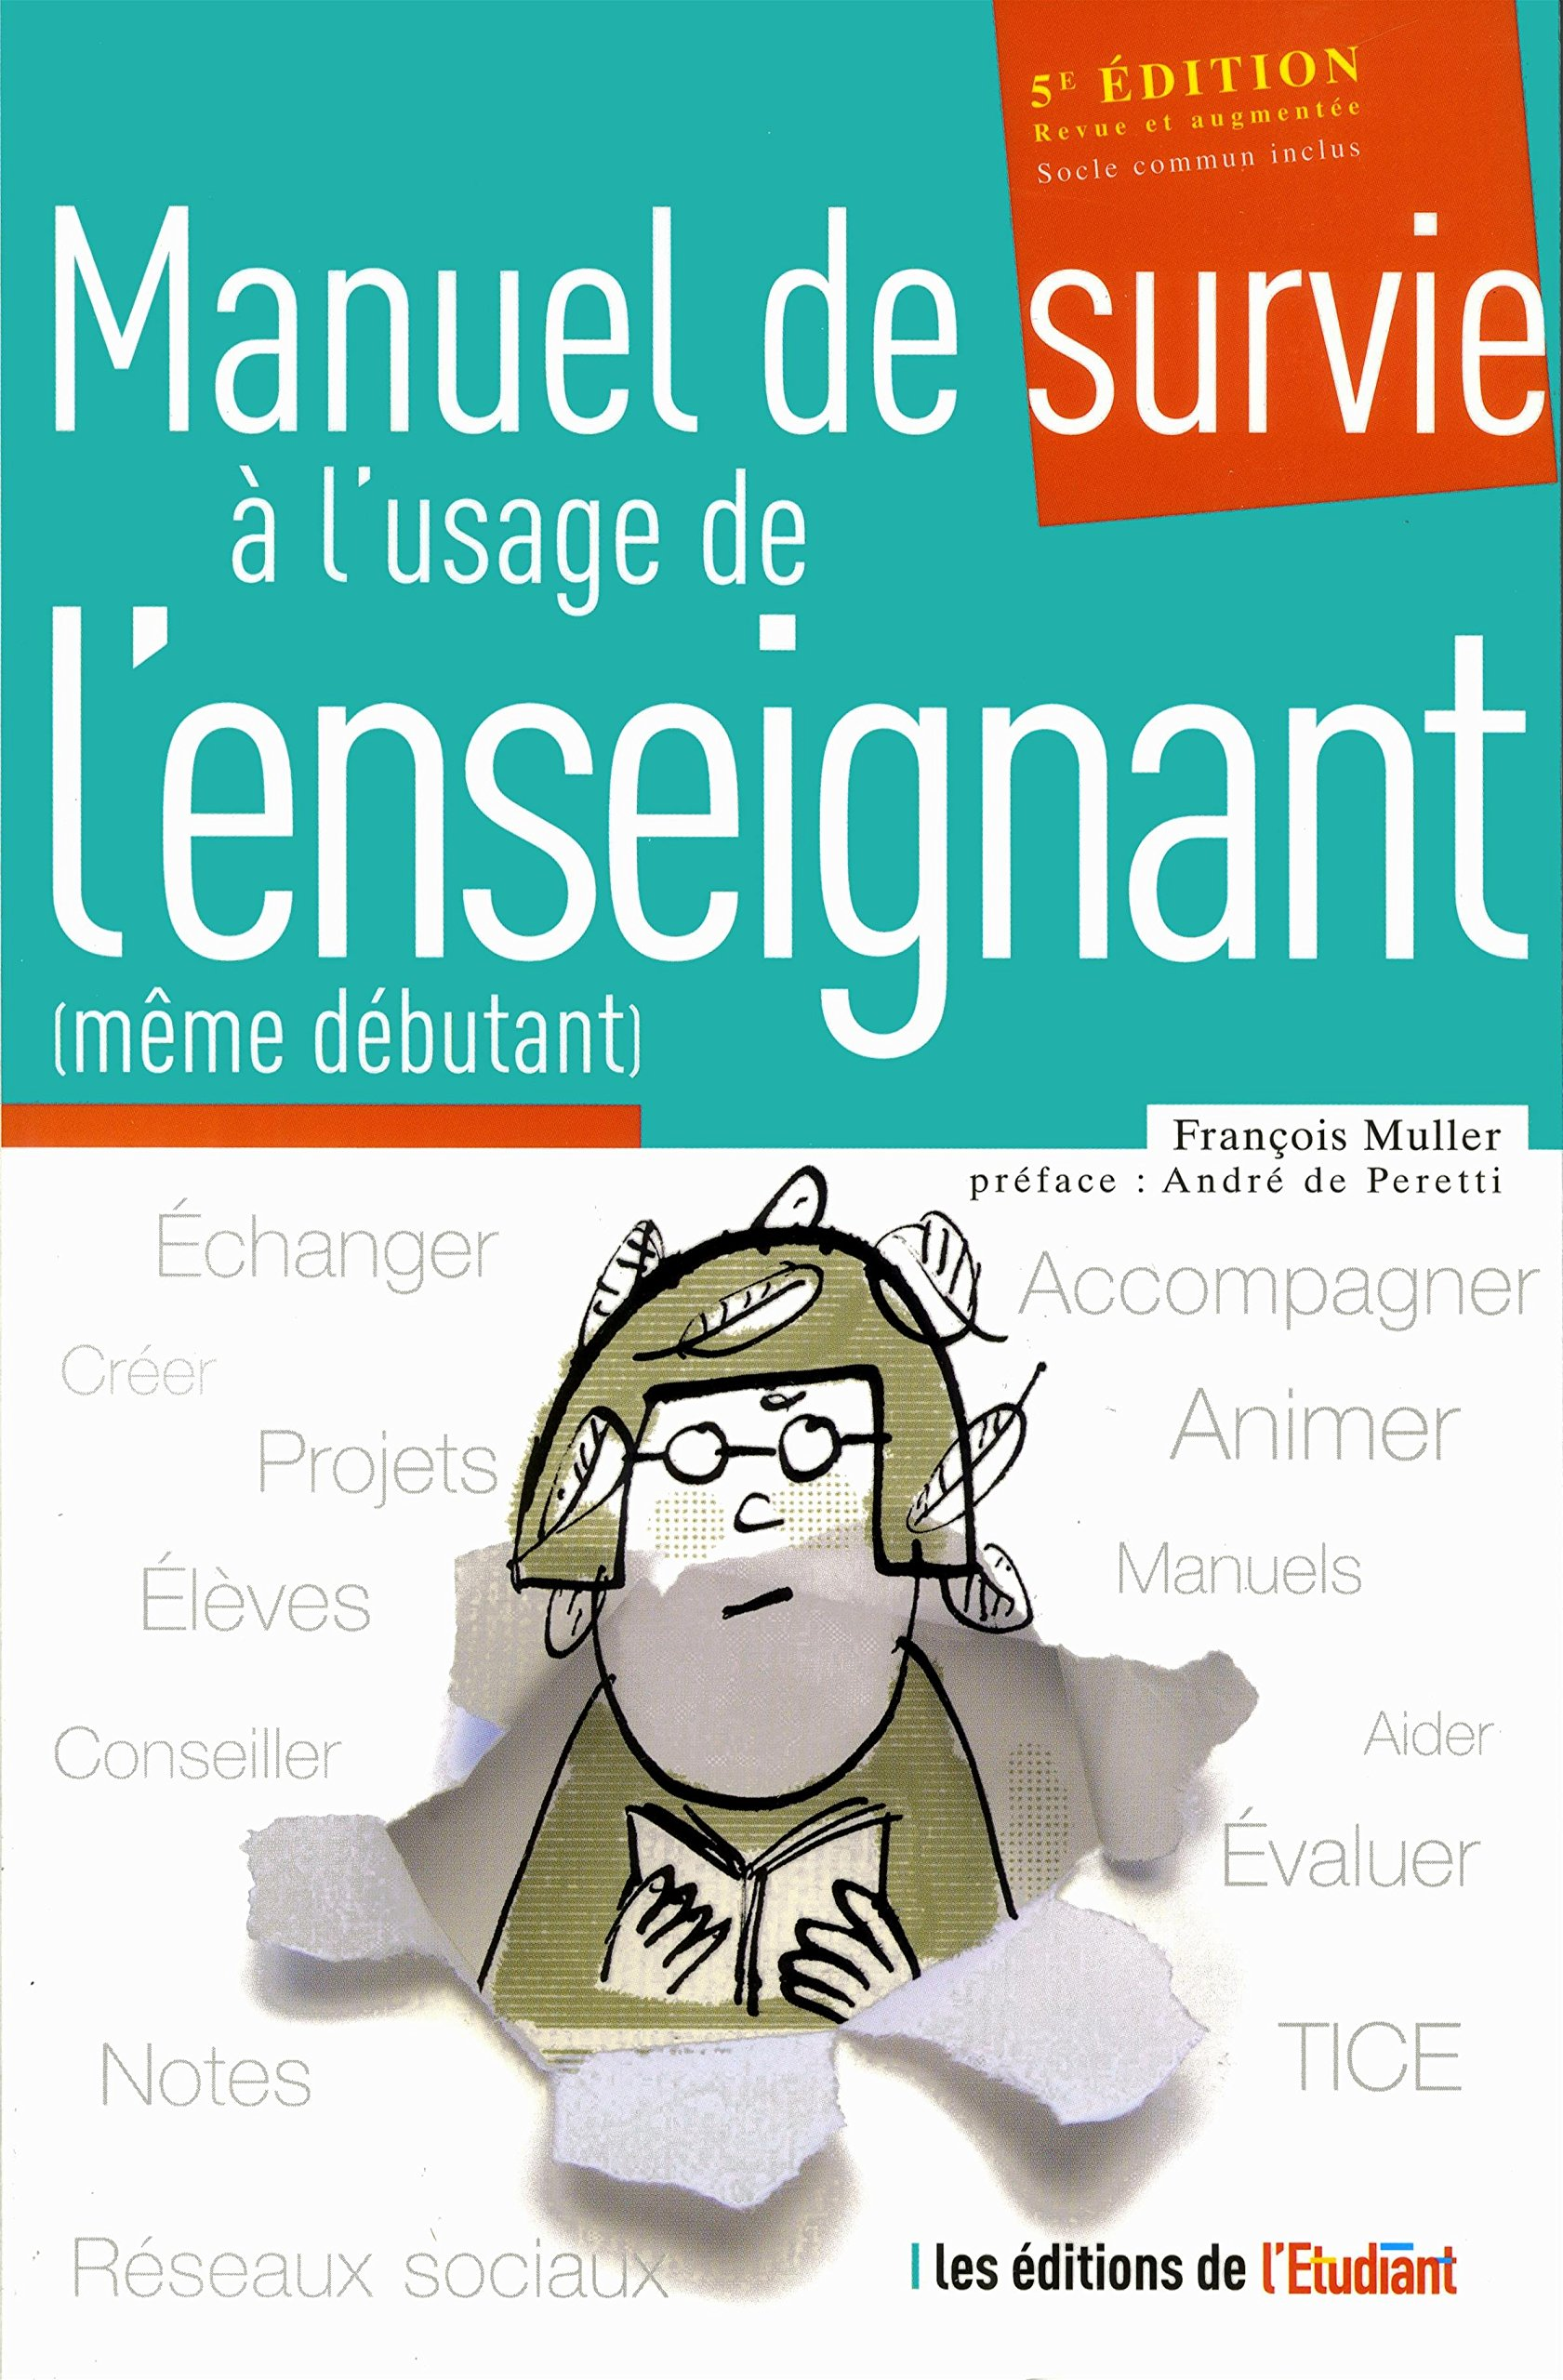 Elever votre enfant hors de controle guide de survie ebook best deal amazon le manuel de survie lusage de lenseignant mme amazon le manuel de survie lusage de fandeluxe Image collections